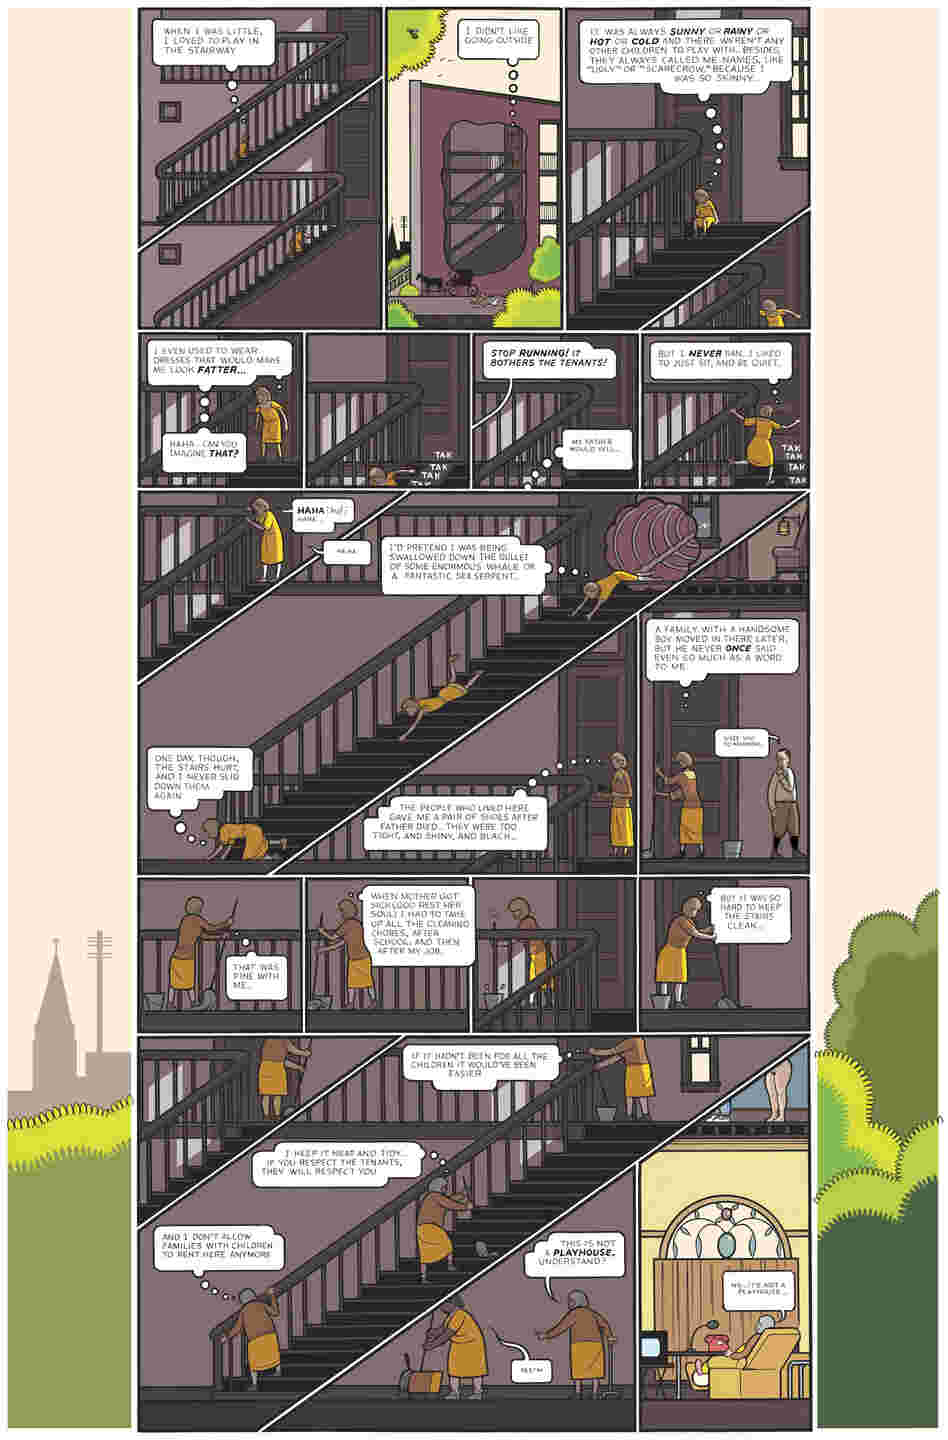 4: The award-winning creator of Jimmy Corrigan: The Smartest Kid on Earth presents an intricately illustrated, sprawling tale about the residents in a three-story Chicago apartment building, including a lonely single woman, a couple who are growing to despise each other and an elderly landlady.